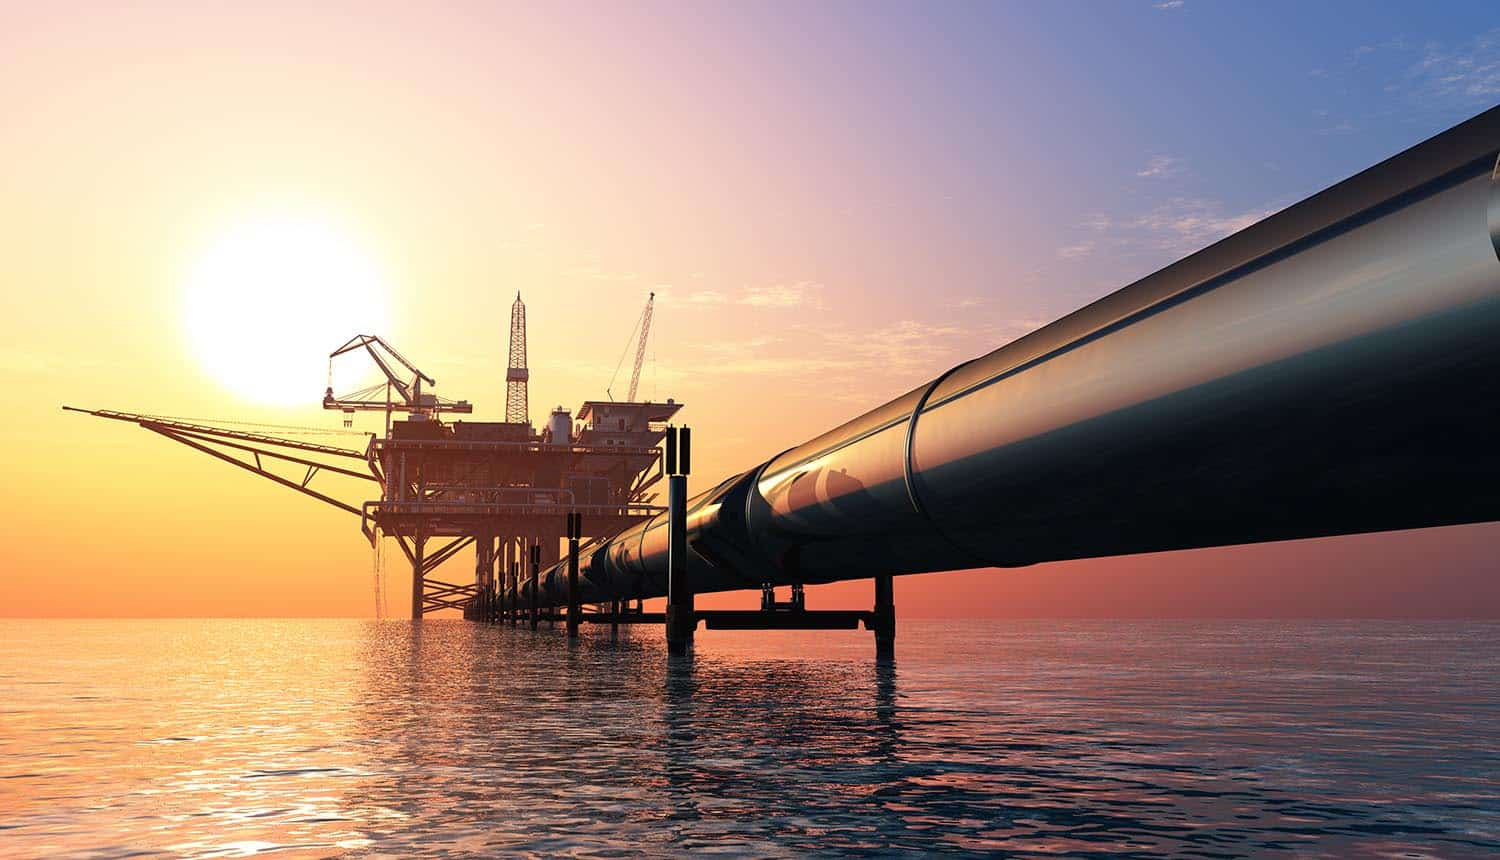 Oil production in the evening sky showing cybersecurity regulations for pipeline industry